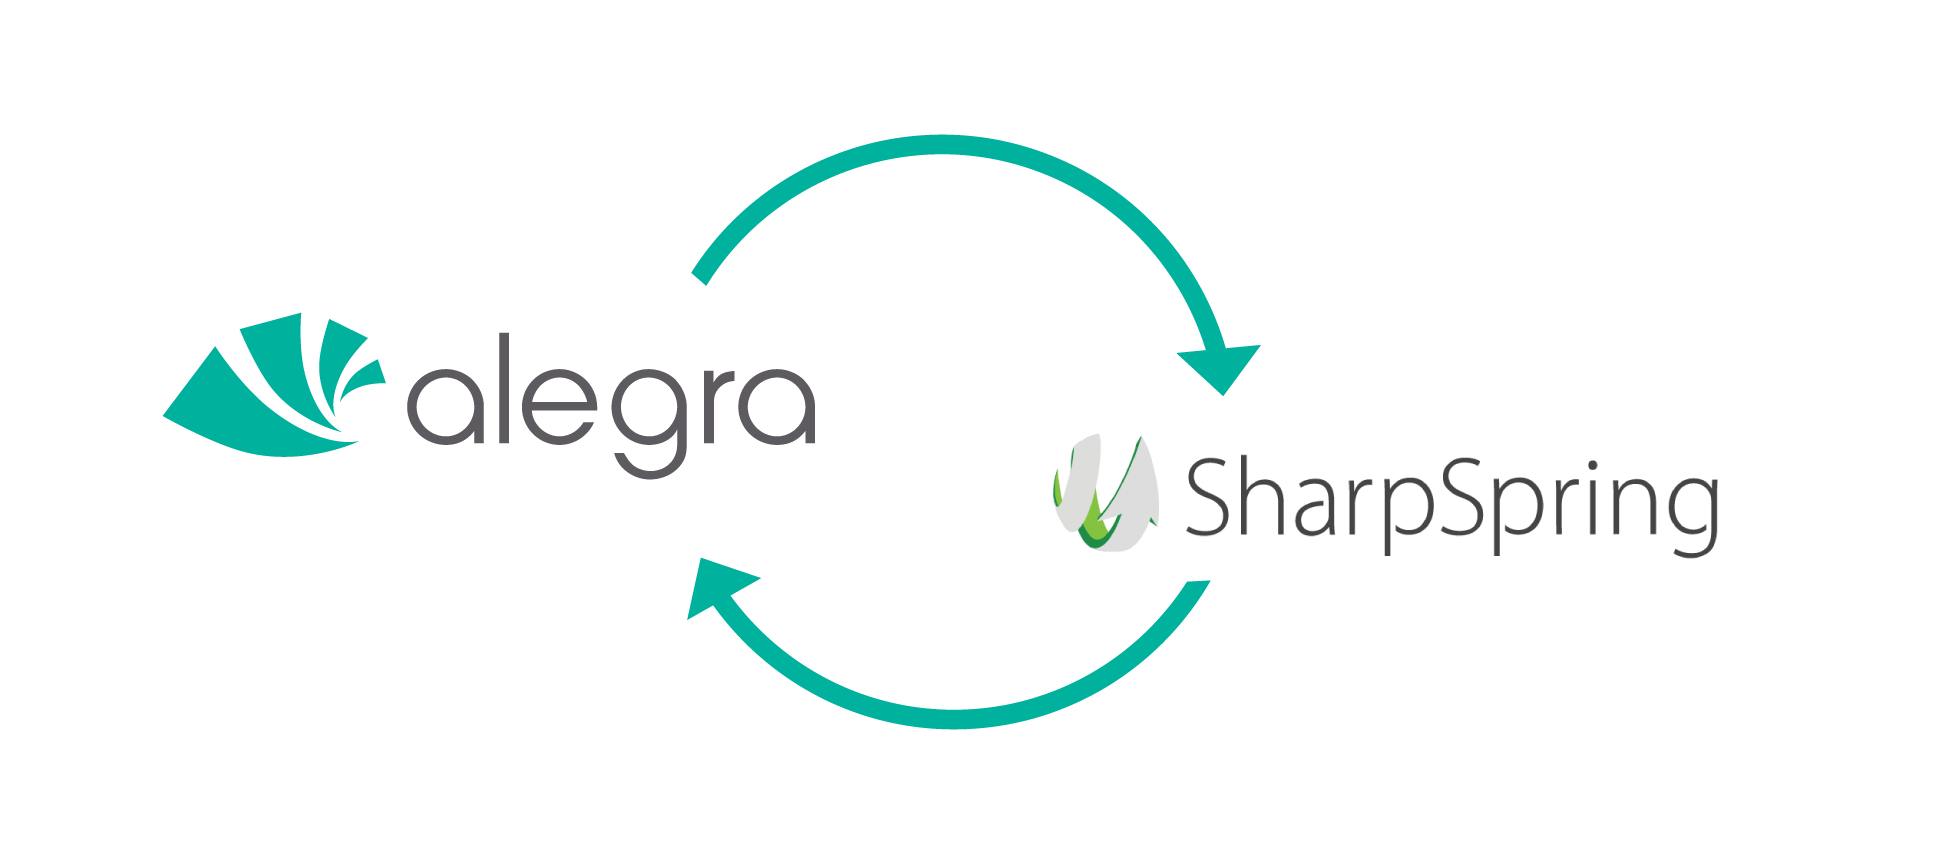 Alegra y SharpSpring se integran para automatizar el marketing y la contabilidad